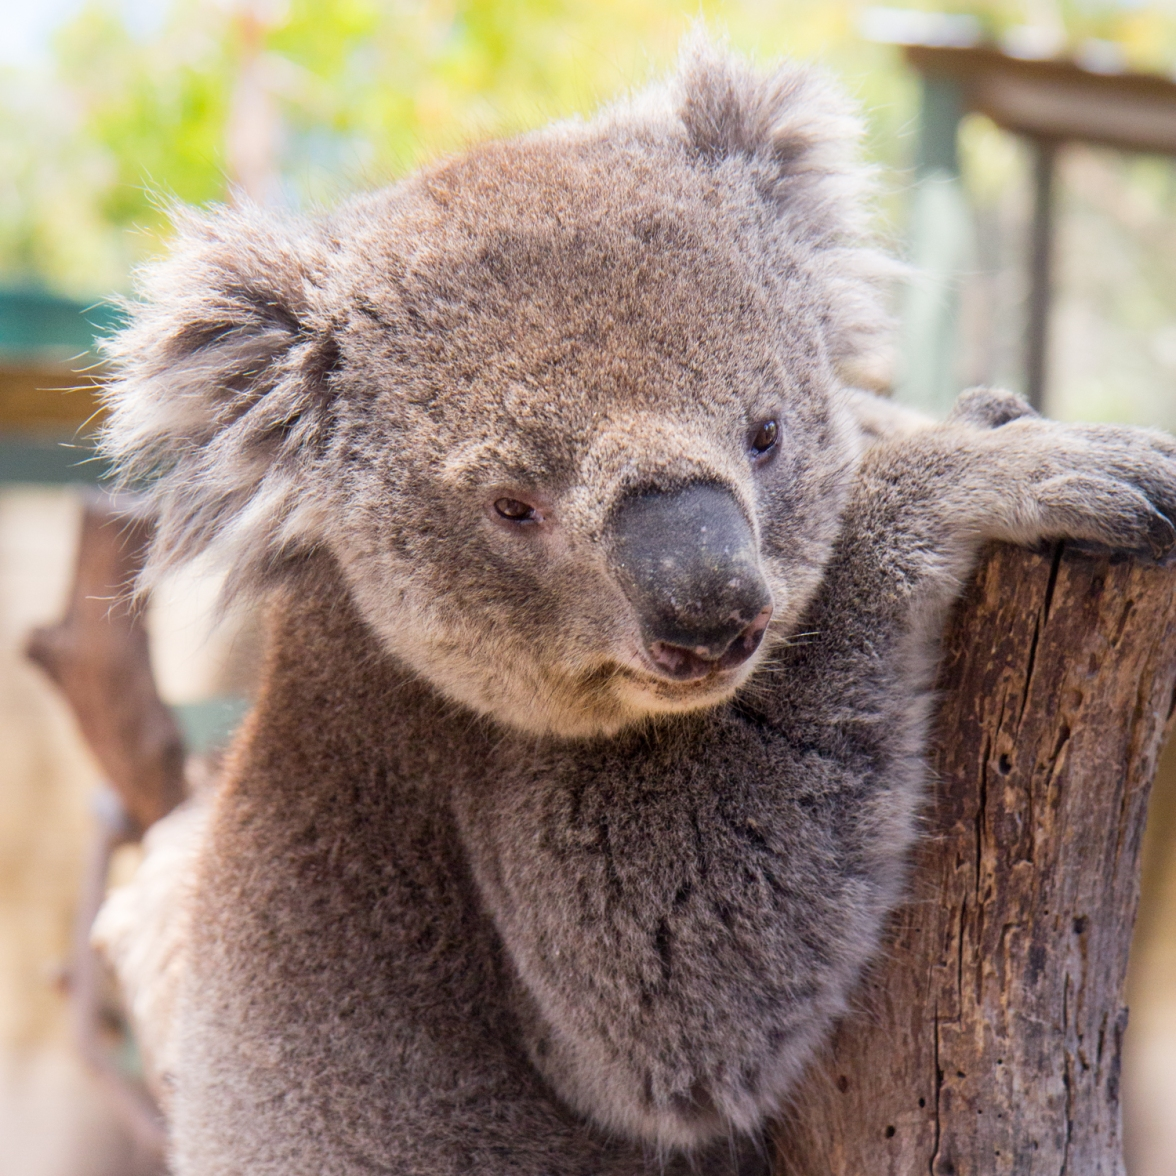 Koala at Moonlit Sanctuary © Katharina Sunk